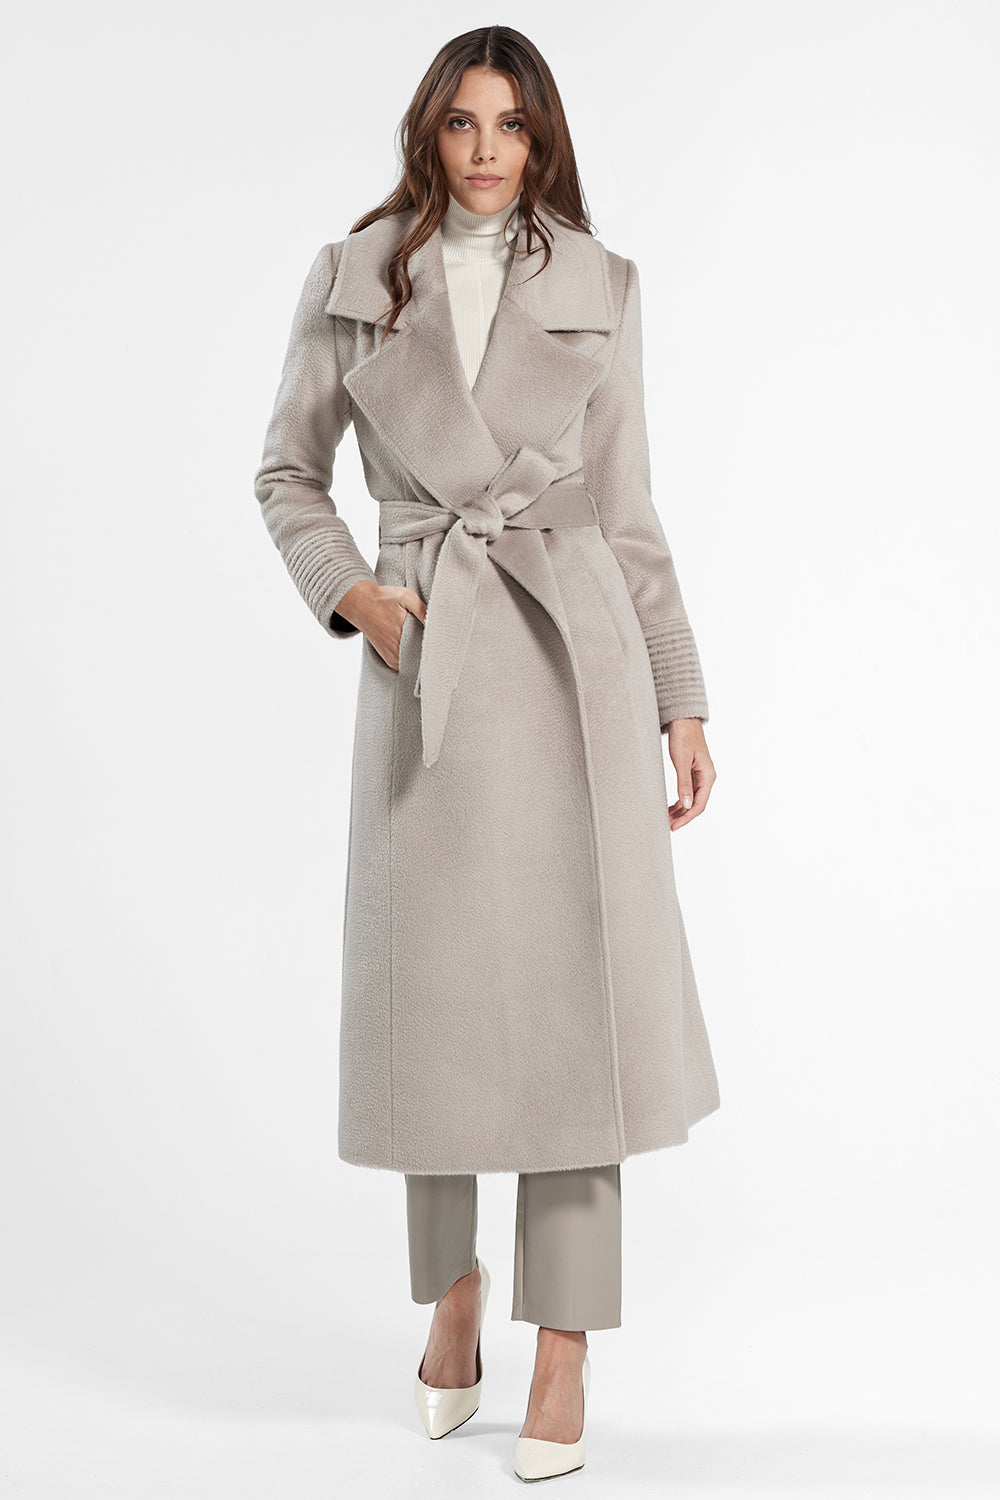 Sentaler Suri Alpaca Long Notched Collar Wrap Coat featured in Suri Alpaca and available in Bleeker Beige. Seen from front.